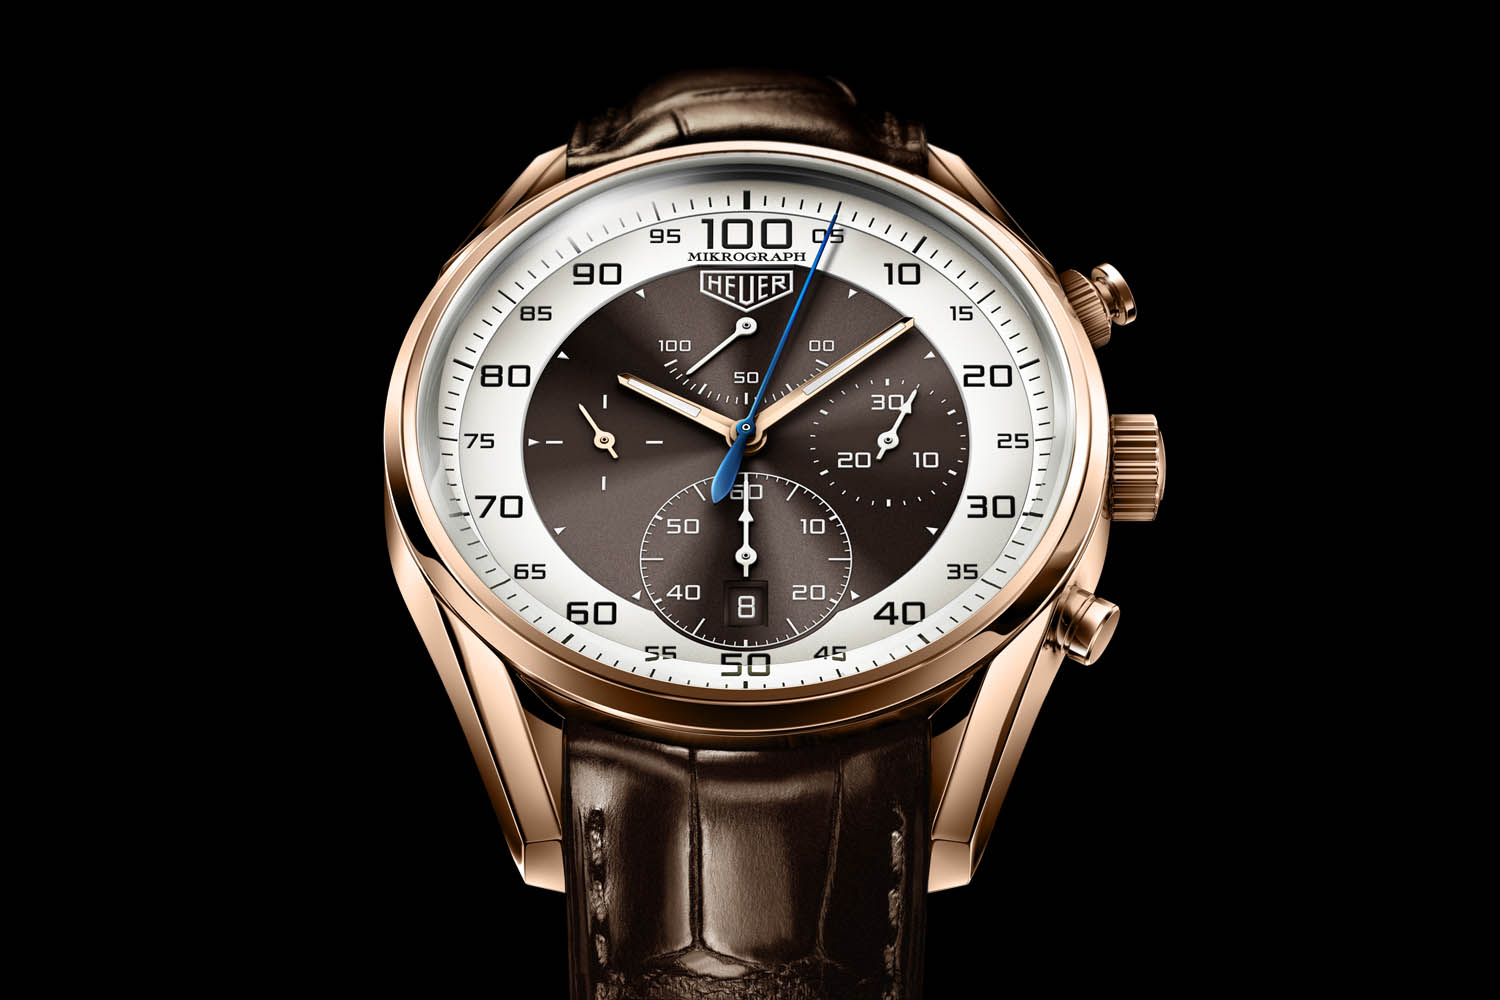 Tag heuer Mikrograph 2011